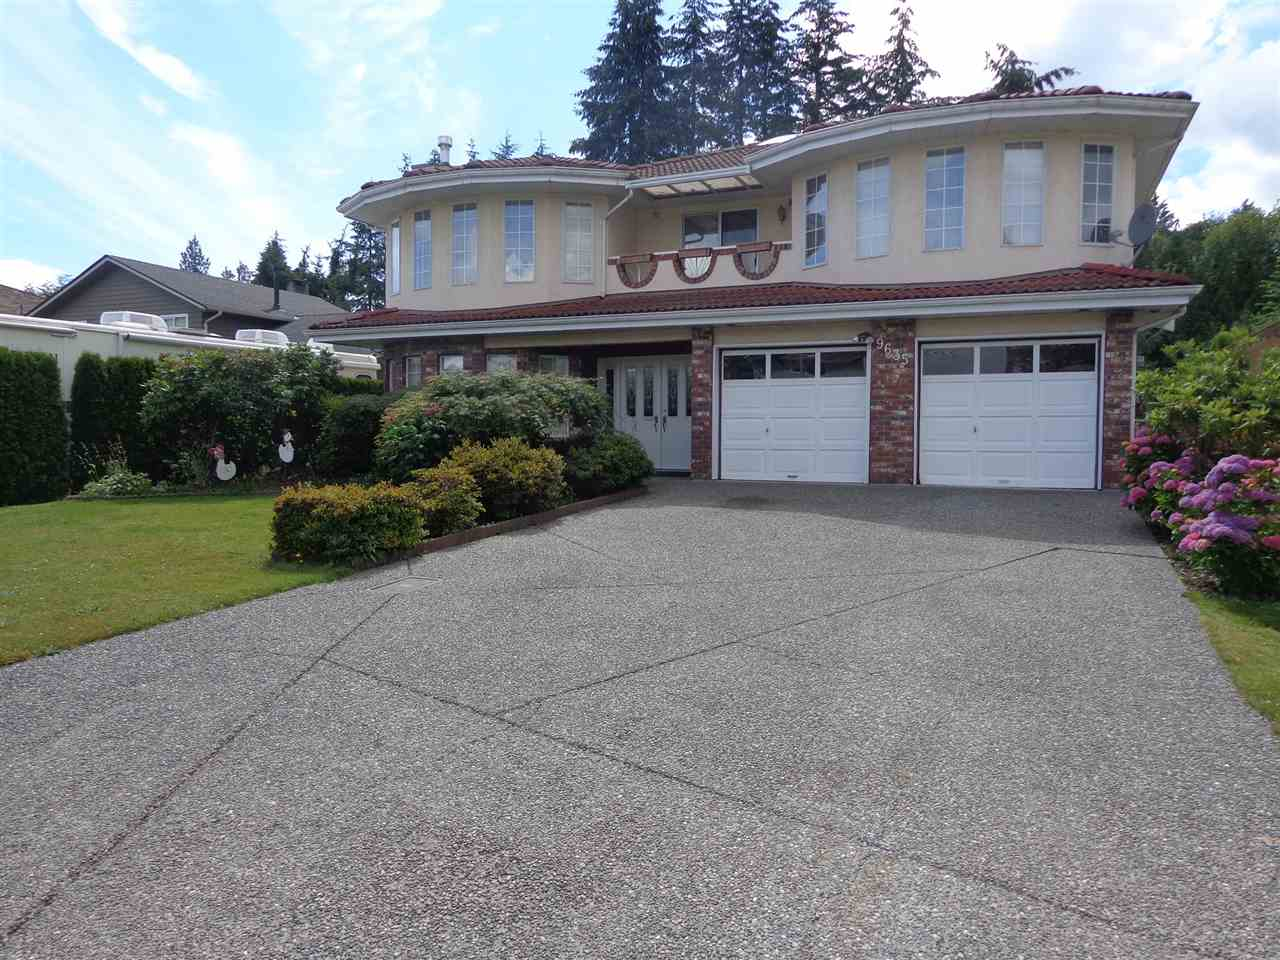 Main Photo: 9635 157 Street in Surrey: Guildford House for sale (North Surrey)  : MLS® # R2082262